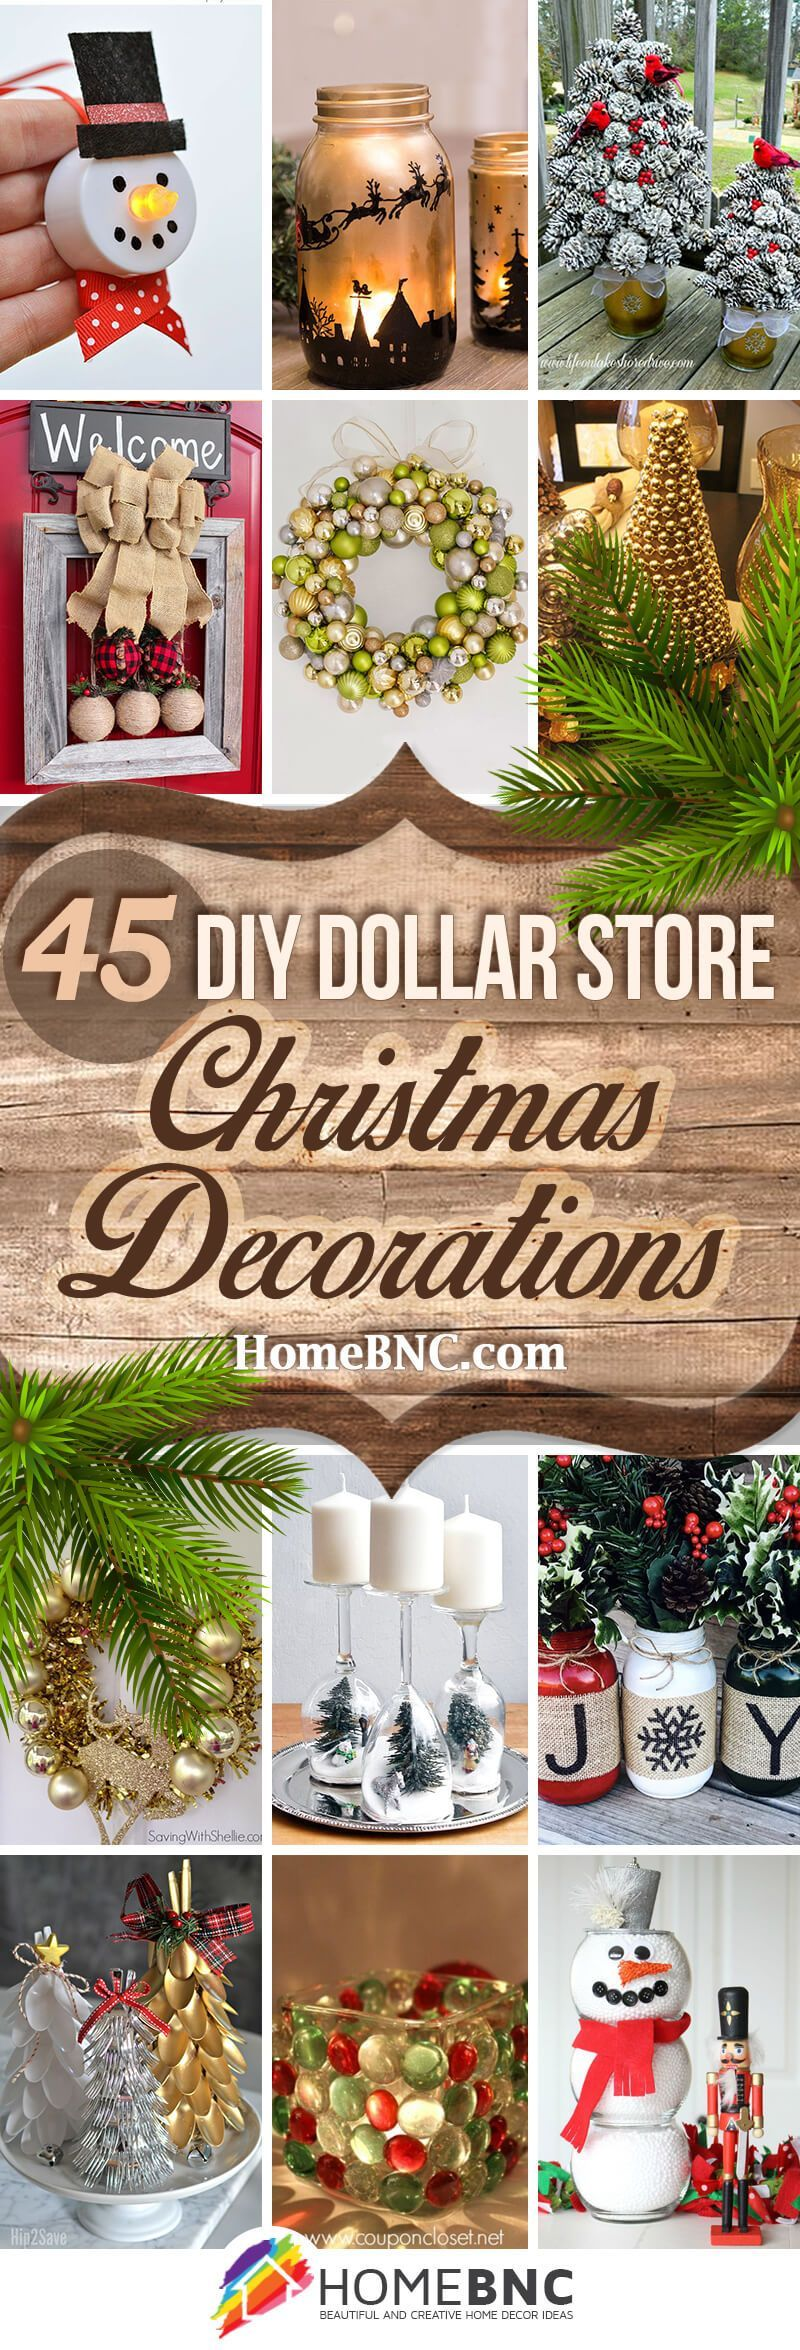 45 Easy DIY Dollar Store Christmas Decorations for